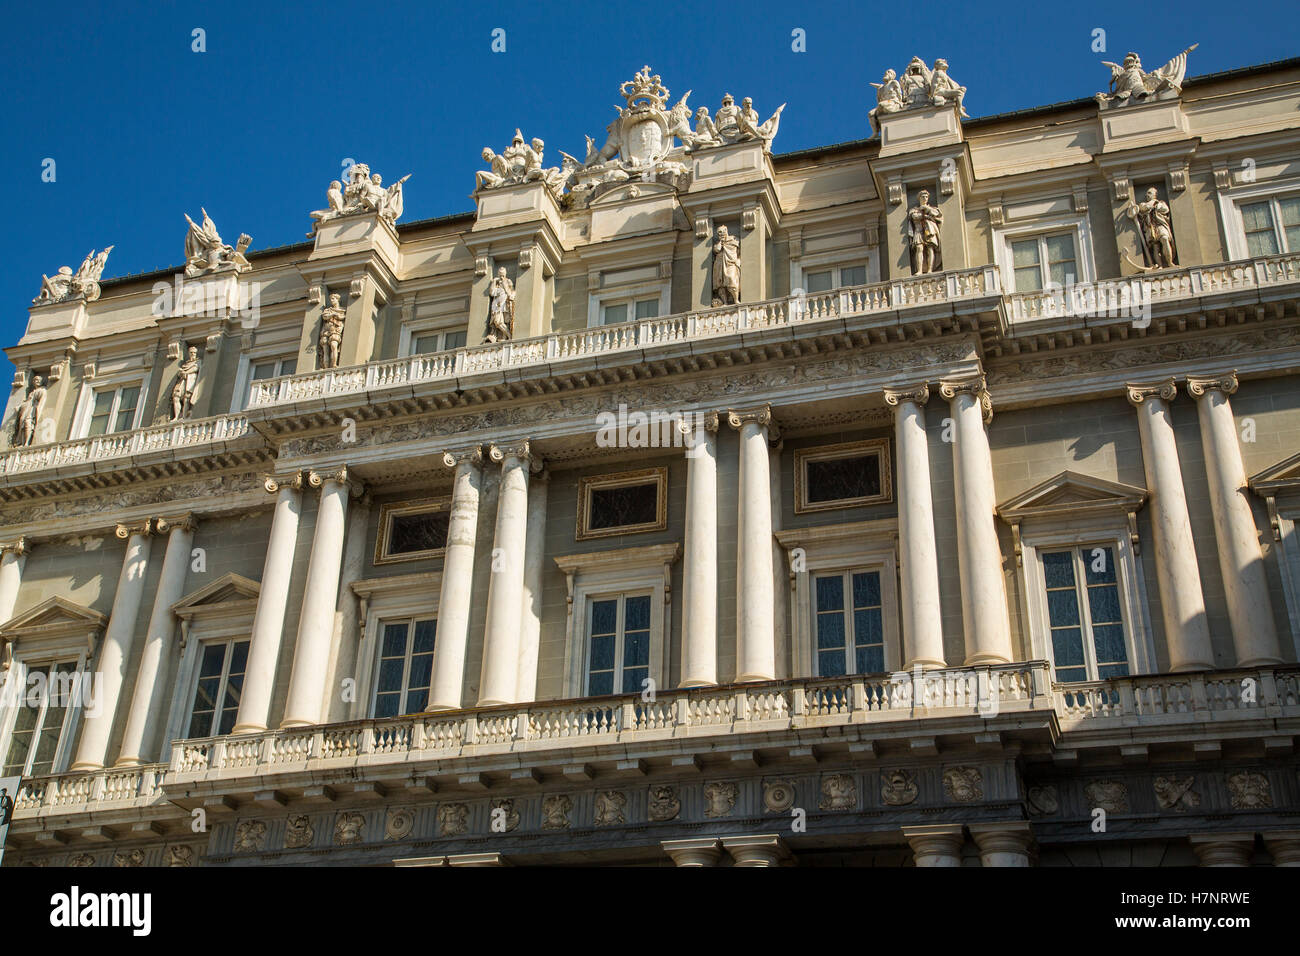 Palazzo Ducale, Piazza Matteotti, historic center. Old Twon. Genoa. Mediterranean Sea. Liguria, Italy Europe - Stock Image